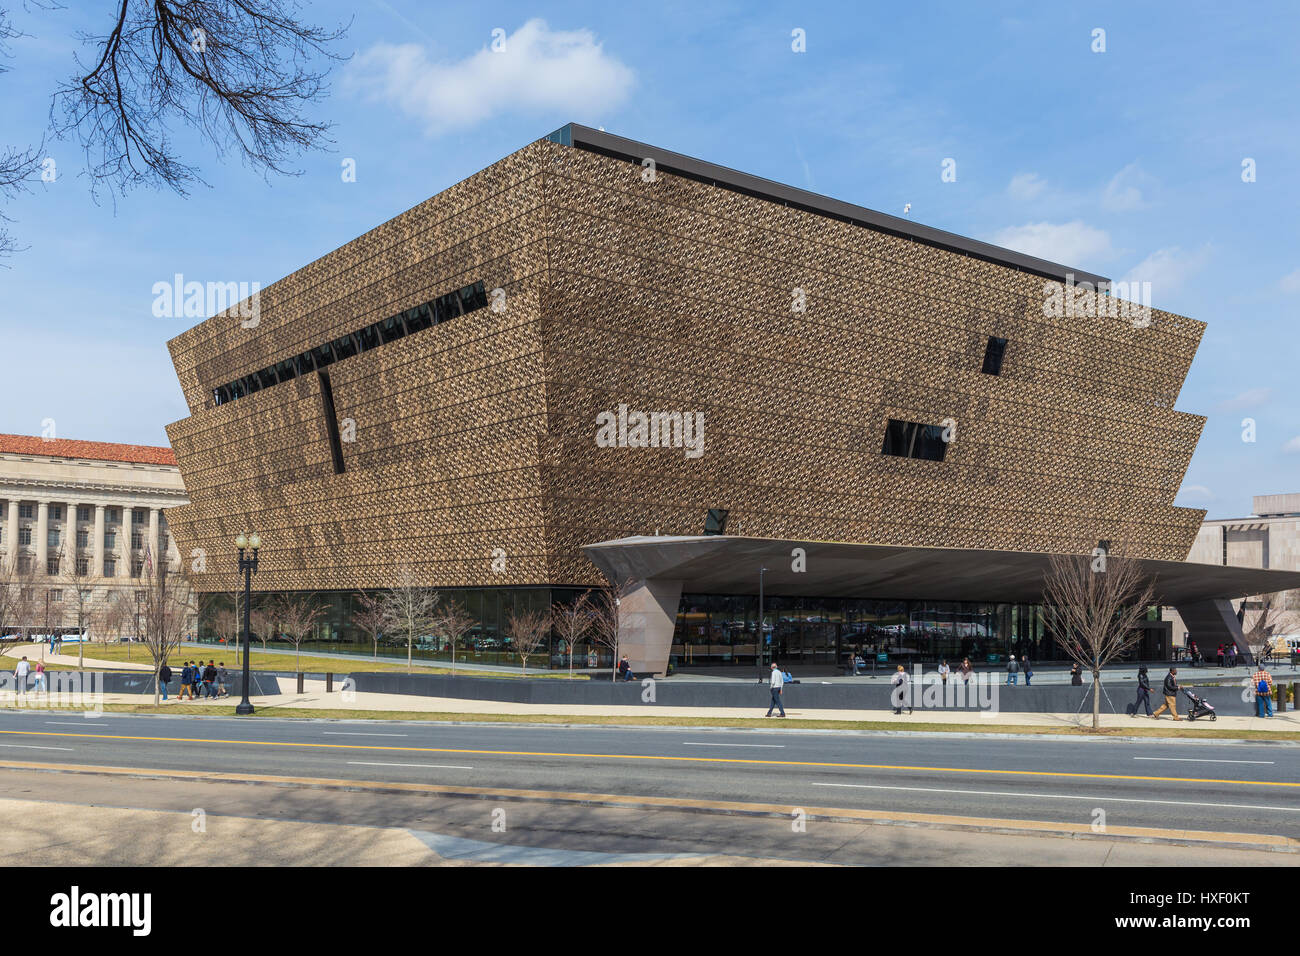 The Smithsonian National Museum of African American History and Culture (NMAAHC) in Washington, DC. - Stock Image